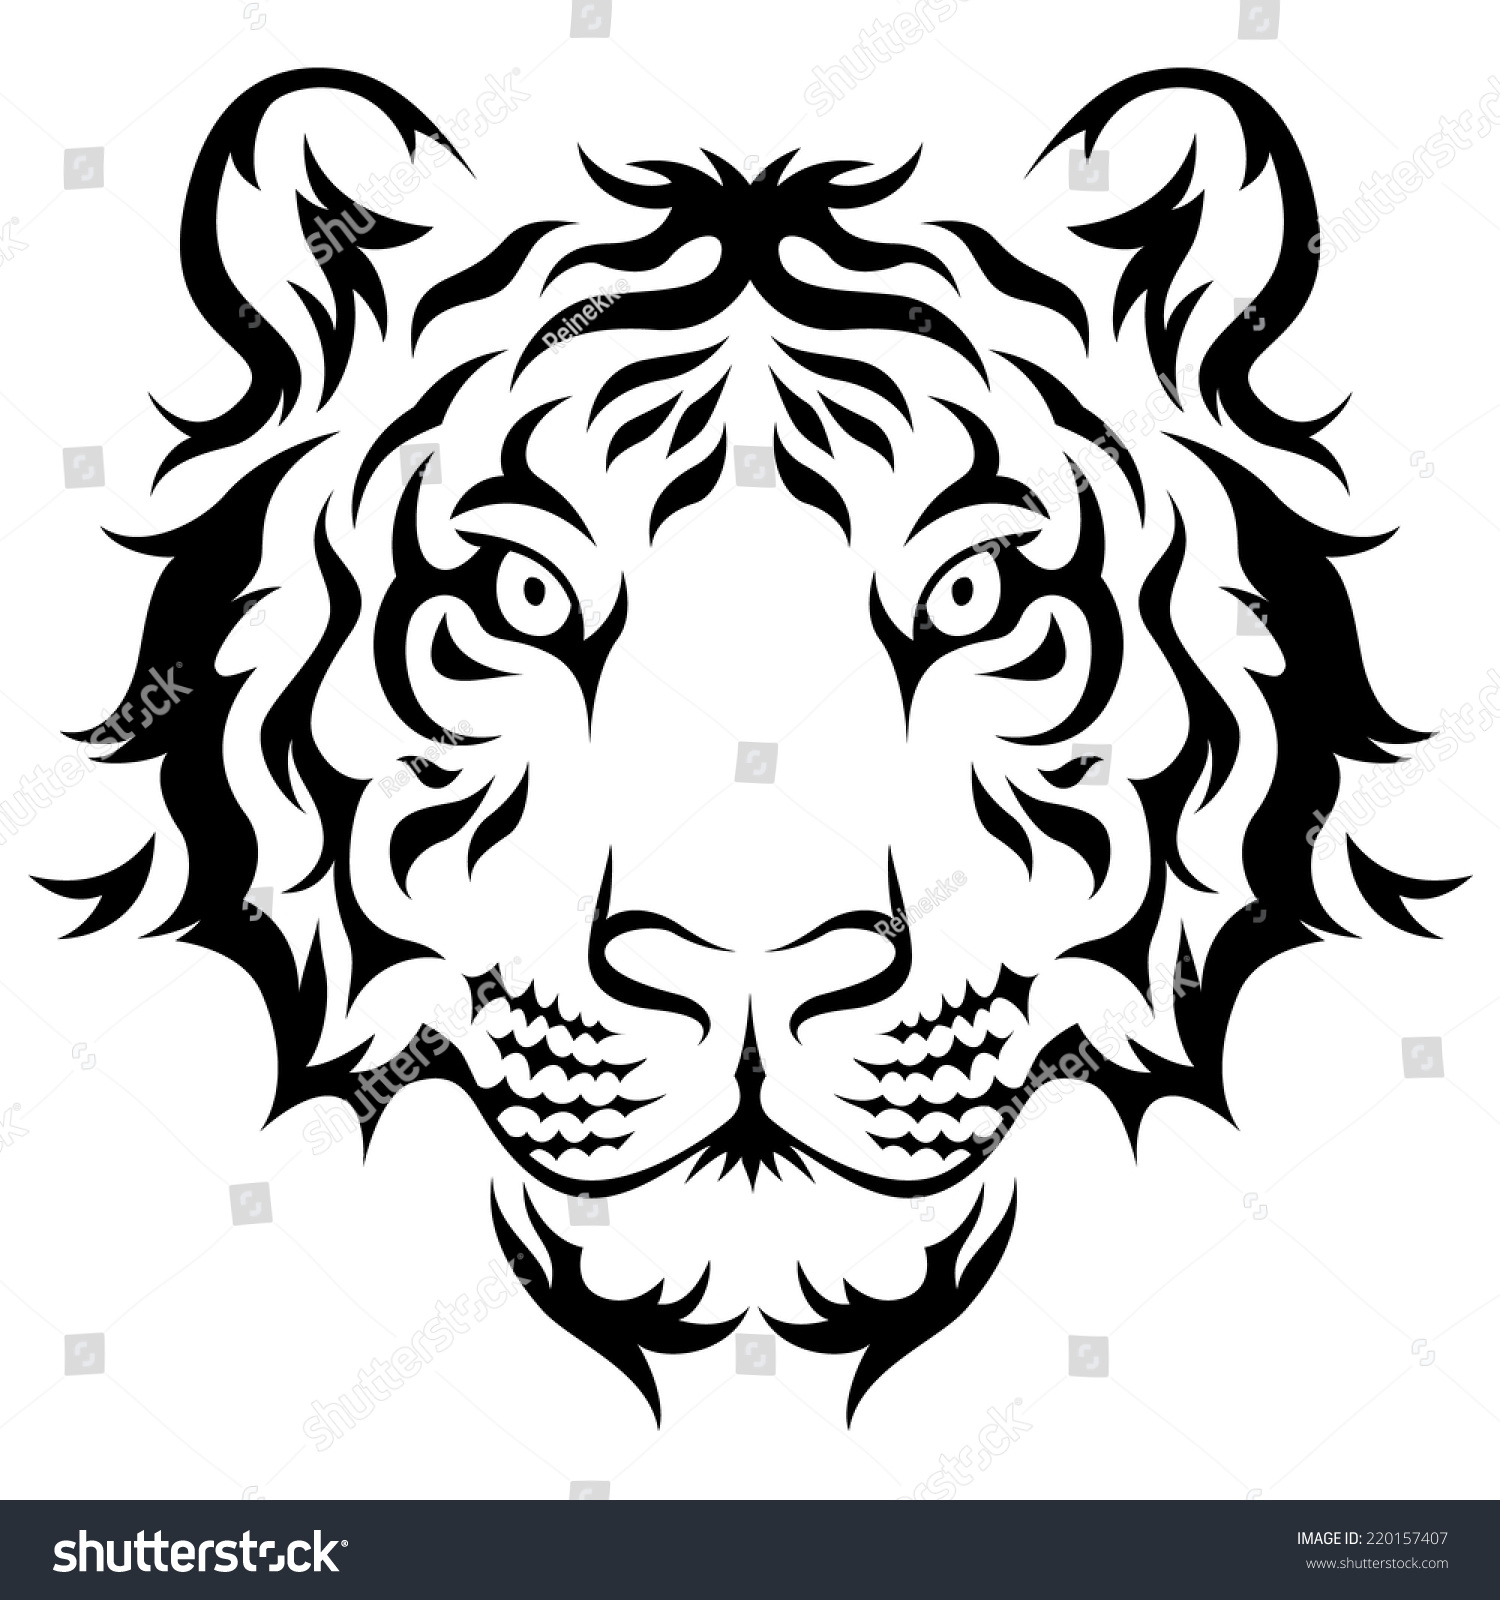 Tribal-Tattoos stock-vector-tigers-head-tribal-tattoo-design-black-isolated-on-white-220157407